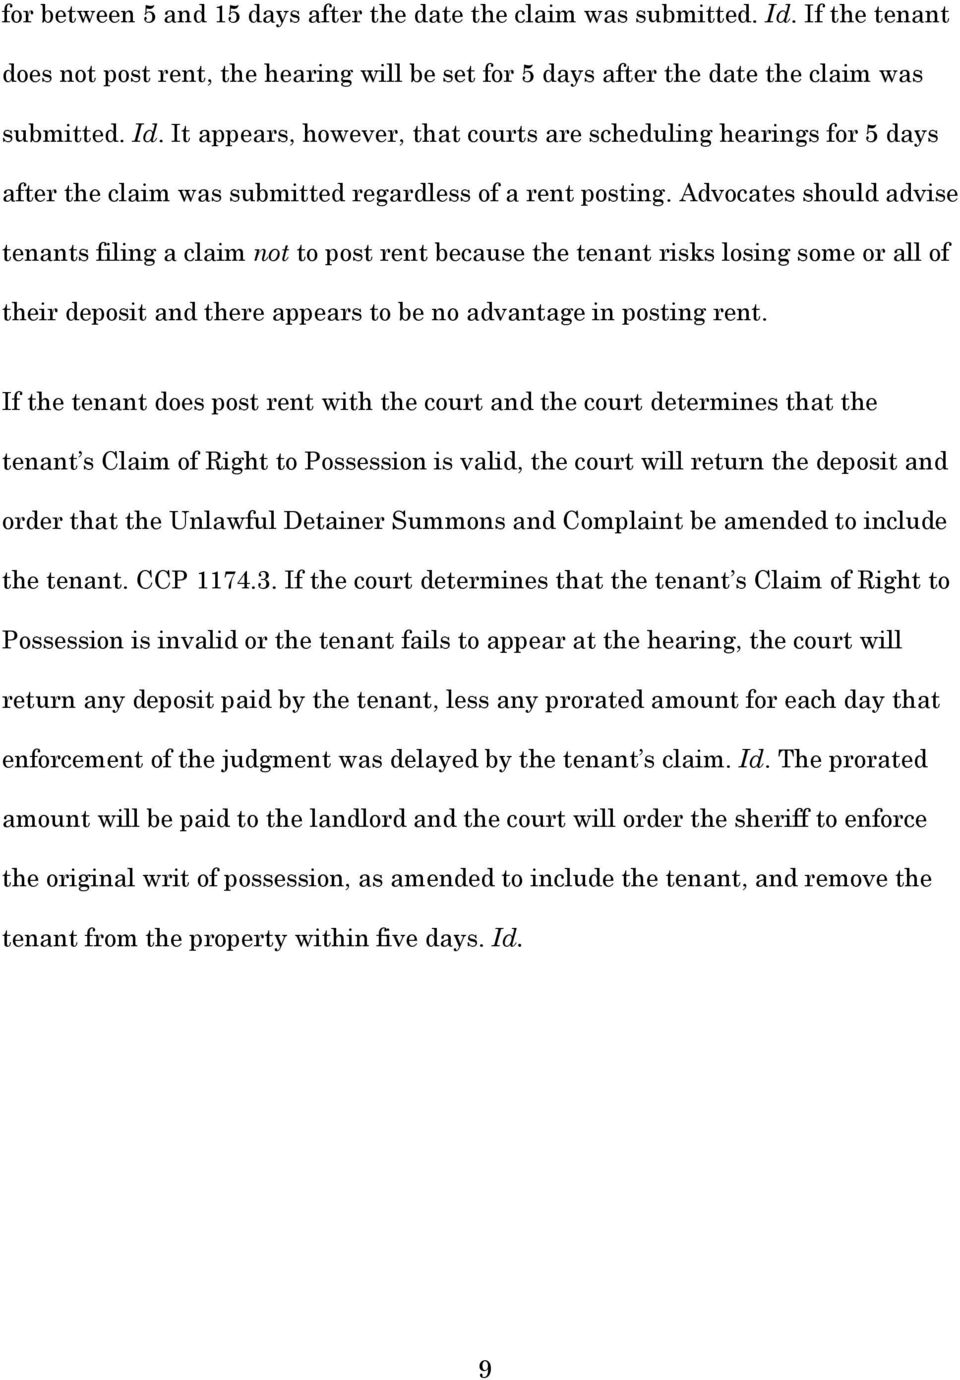 If the tenant does post rent with the court and the court determines that the tenant s Claim of Right to Possession is valid, the court will return the deposit and order that the Unlawful Detainer